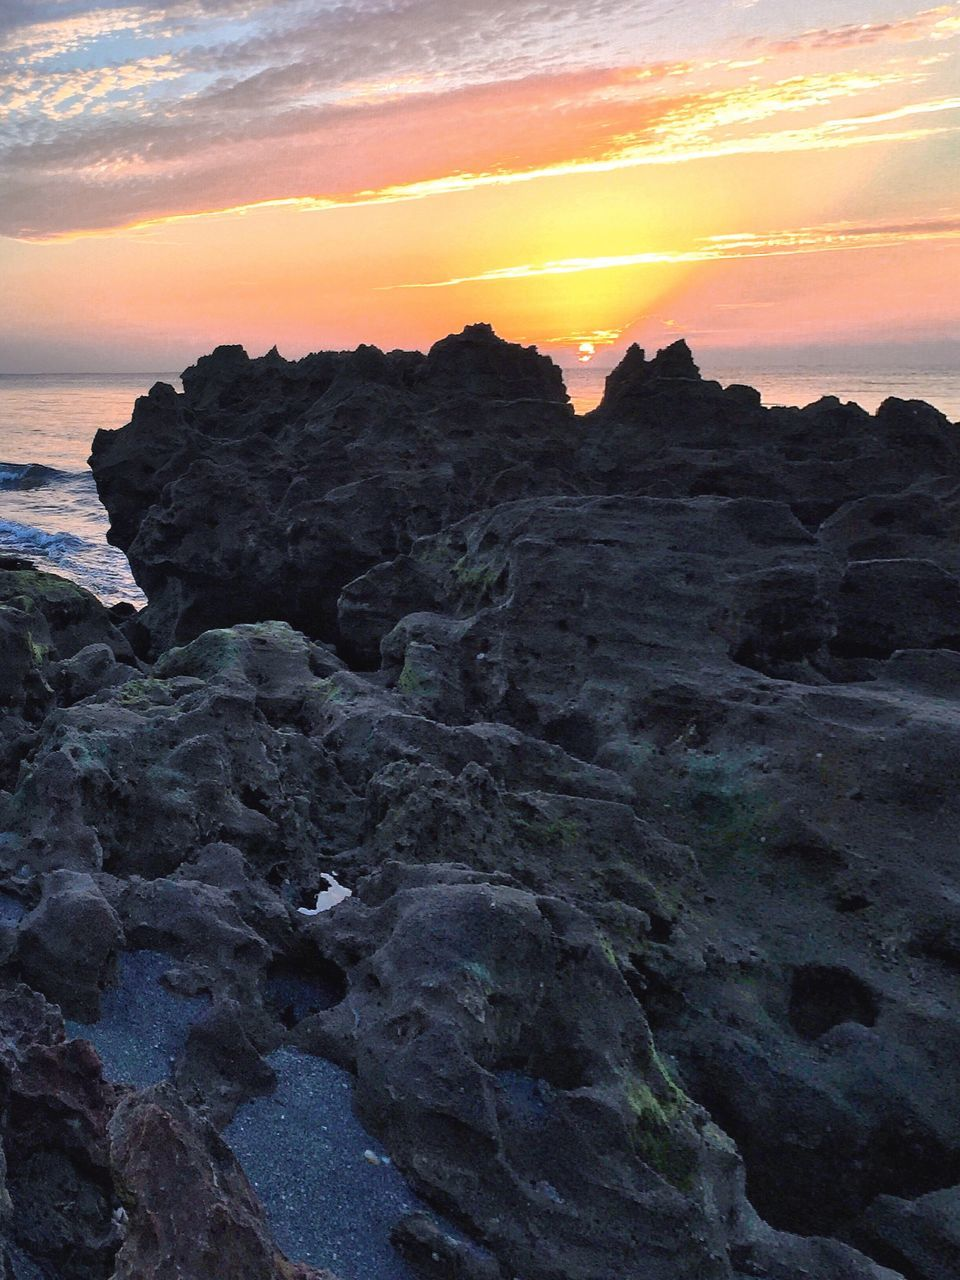 sunset, beauty in nature, nature, rock formation, rock - object, scenics, sky, orange color, tranquility, tranquil scene, idyllic, sea, outdoors, no people, sun, water, horizon over water, day